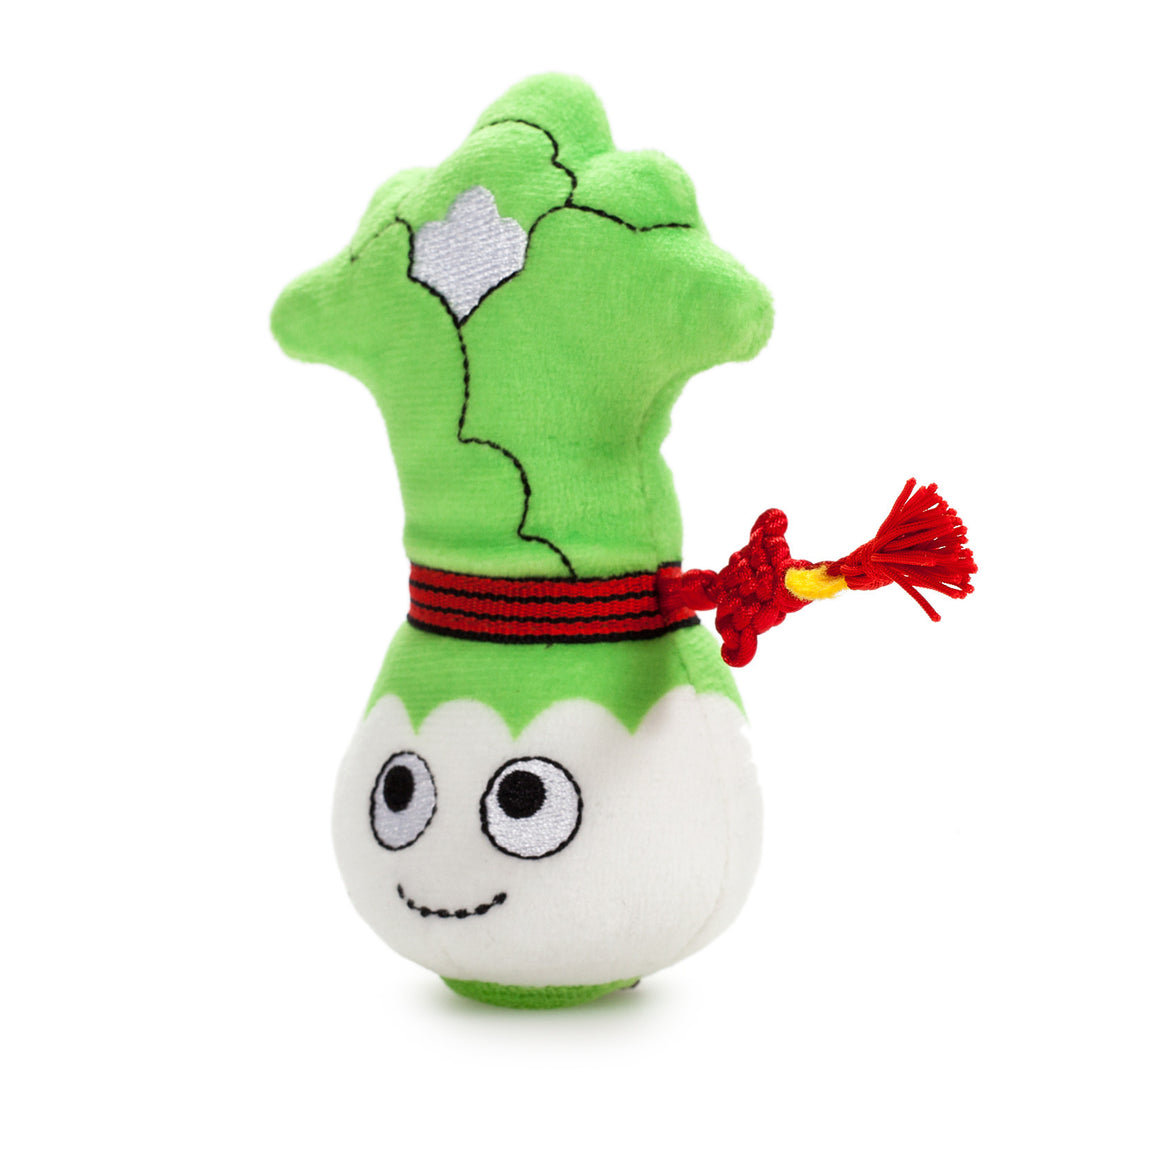 "Brock Choy Yummy World 4"" Plush by Heidi Kenny x Kidrobot - Mindzai  - 1"